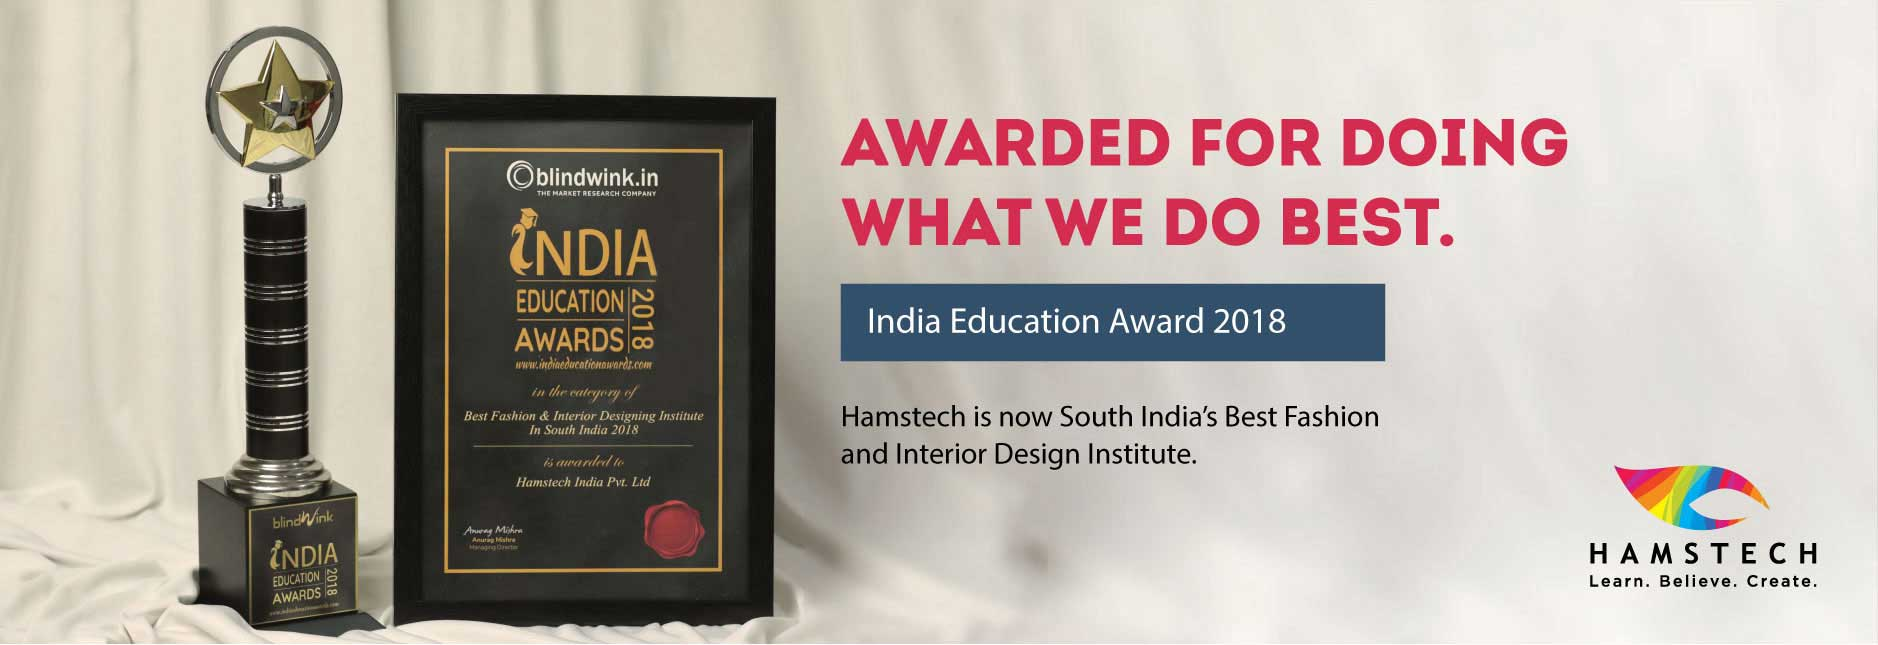 India Education Award